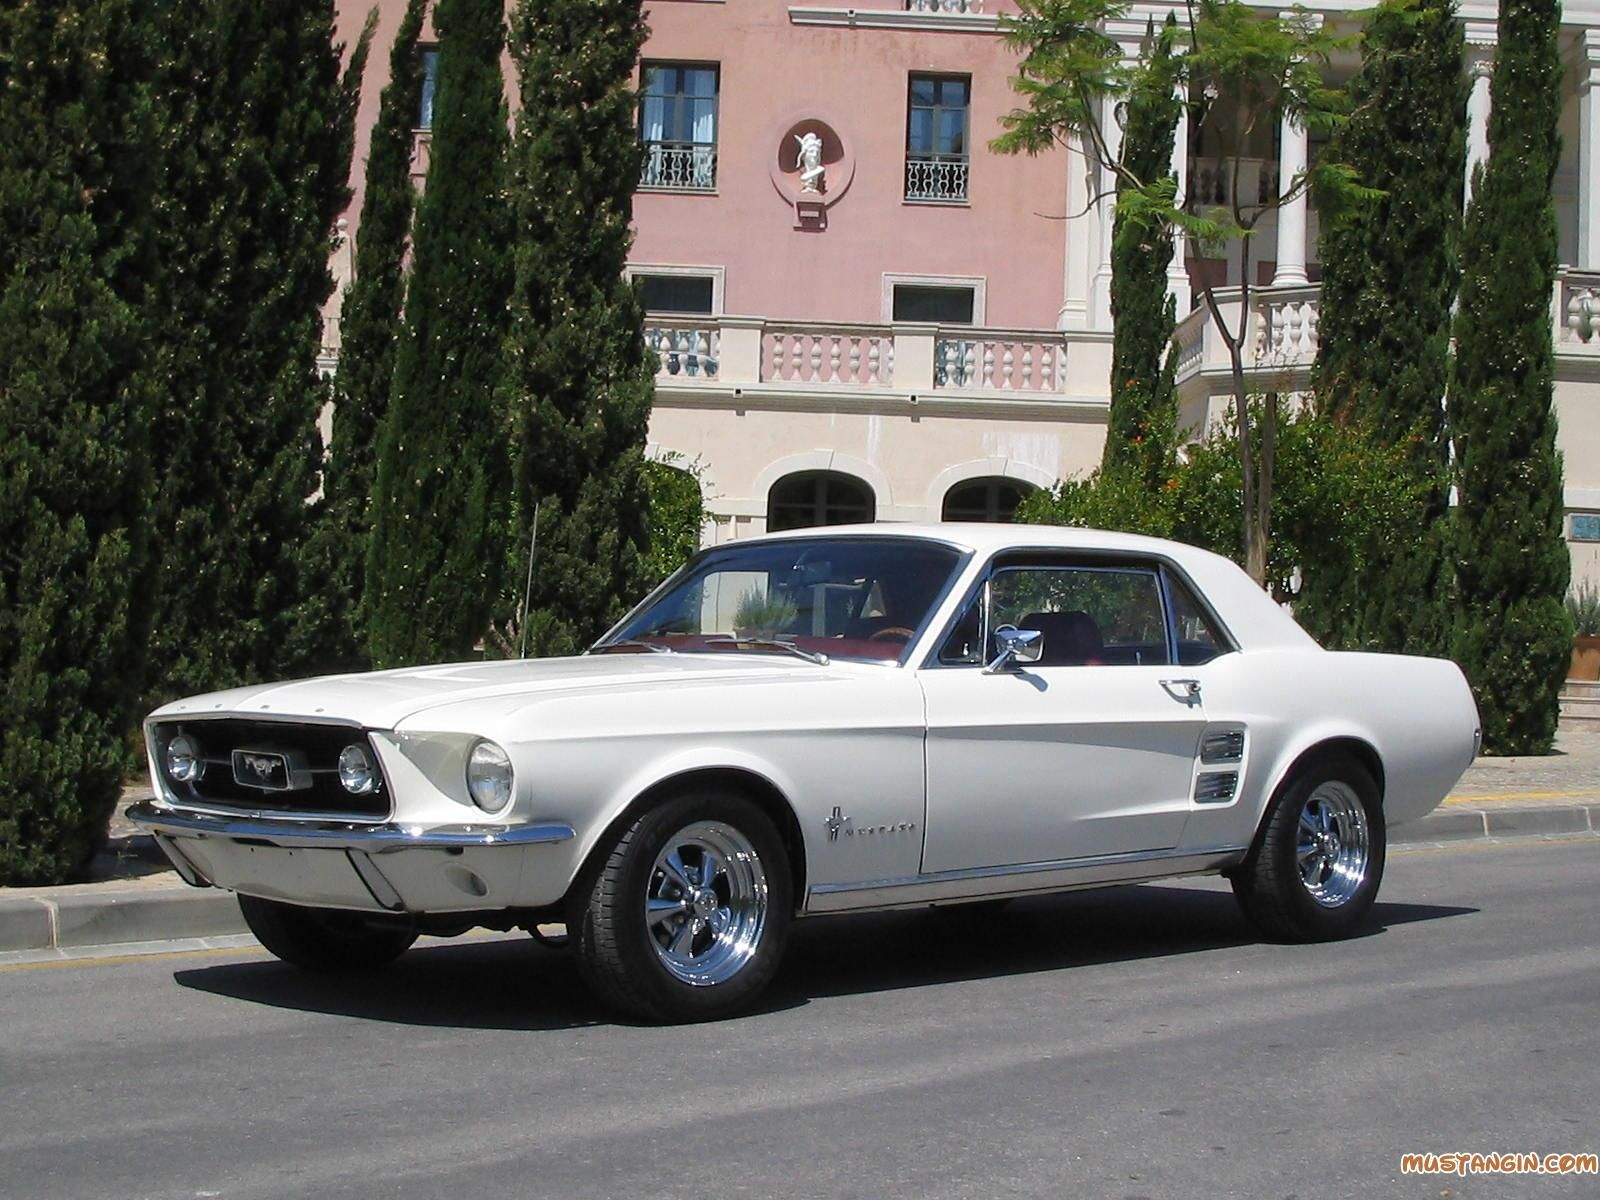 I Used To Have This Car Exactly White With Red Interior 1967 Ford Mustang Still Very Distraught Tha American Dream Cars Ford Mustang Car Ford Mustang Coupe